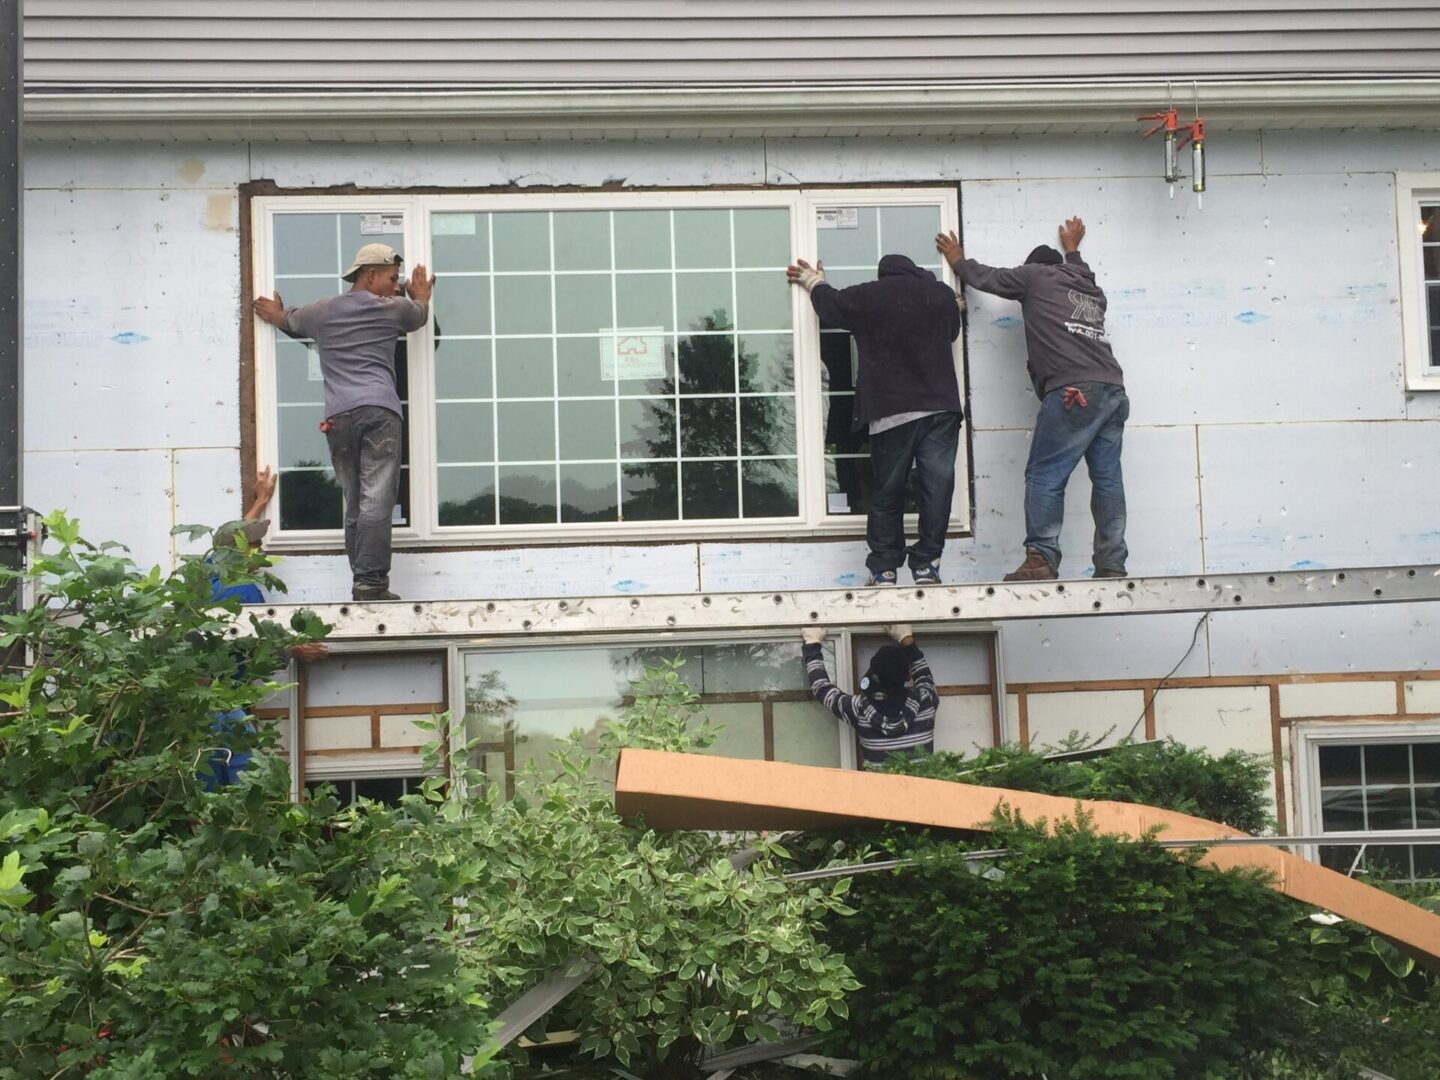 Men holding up a window